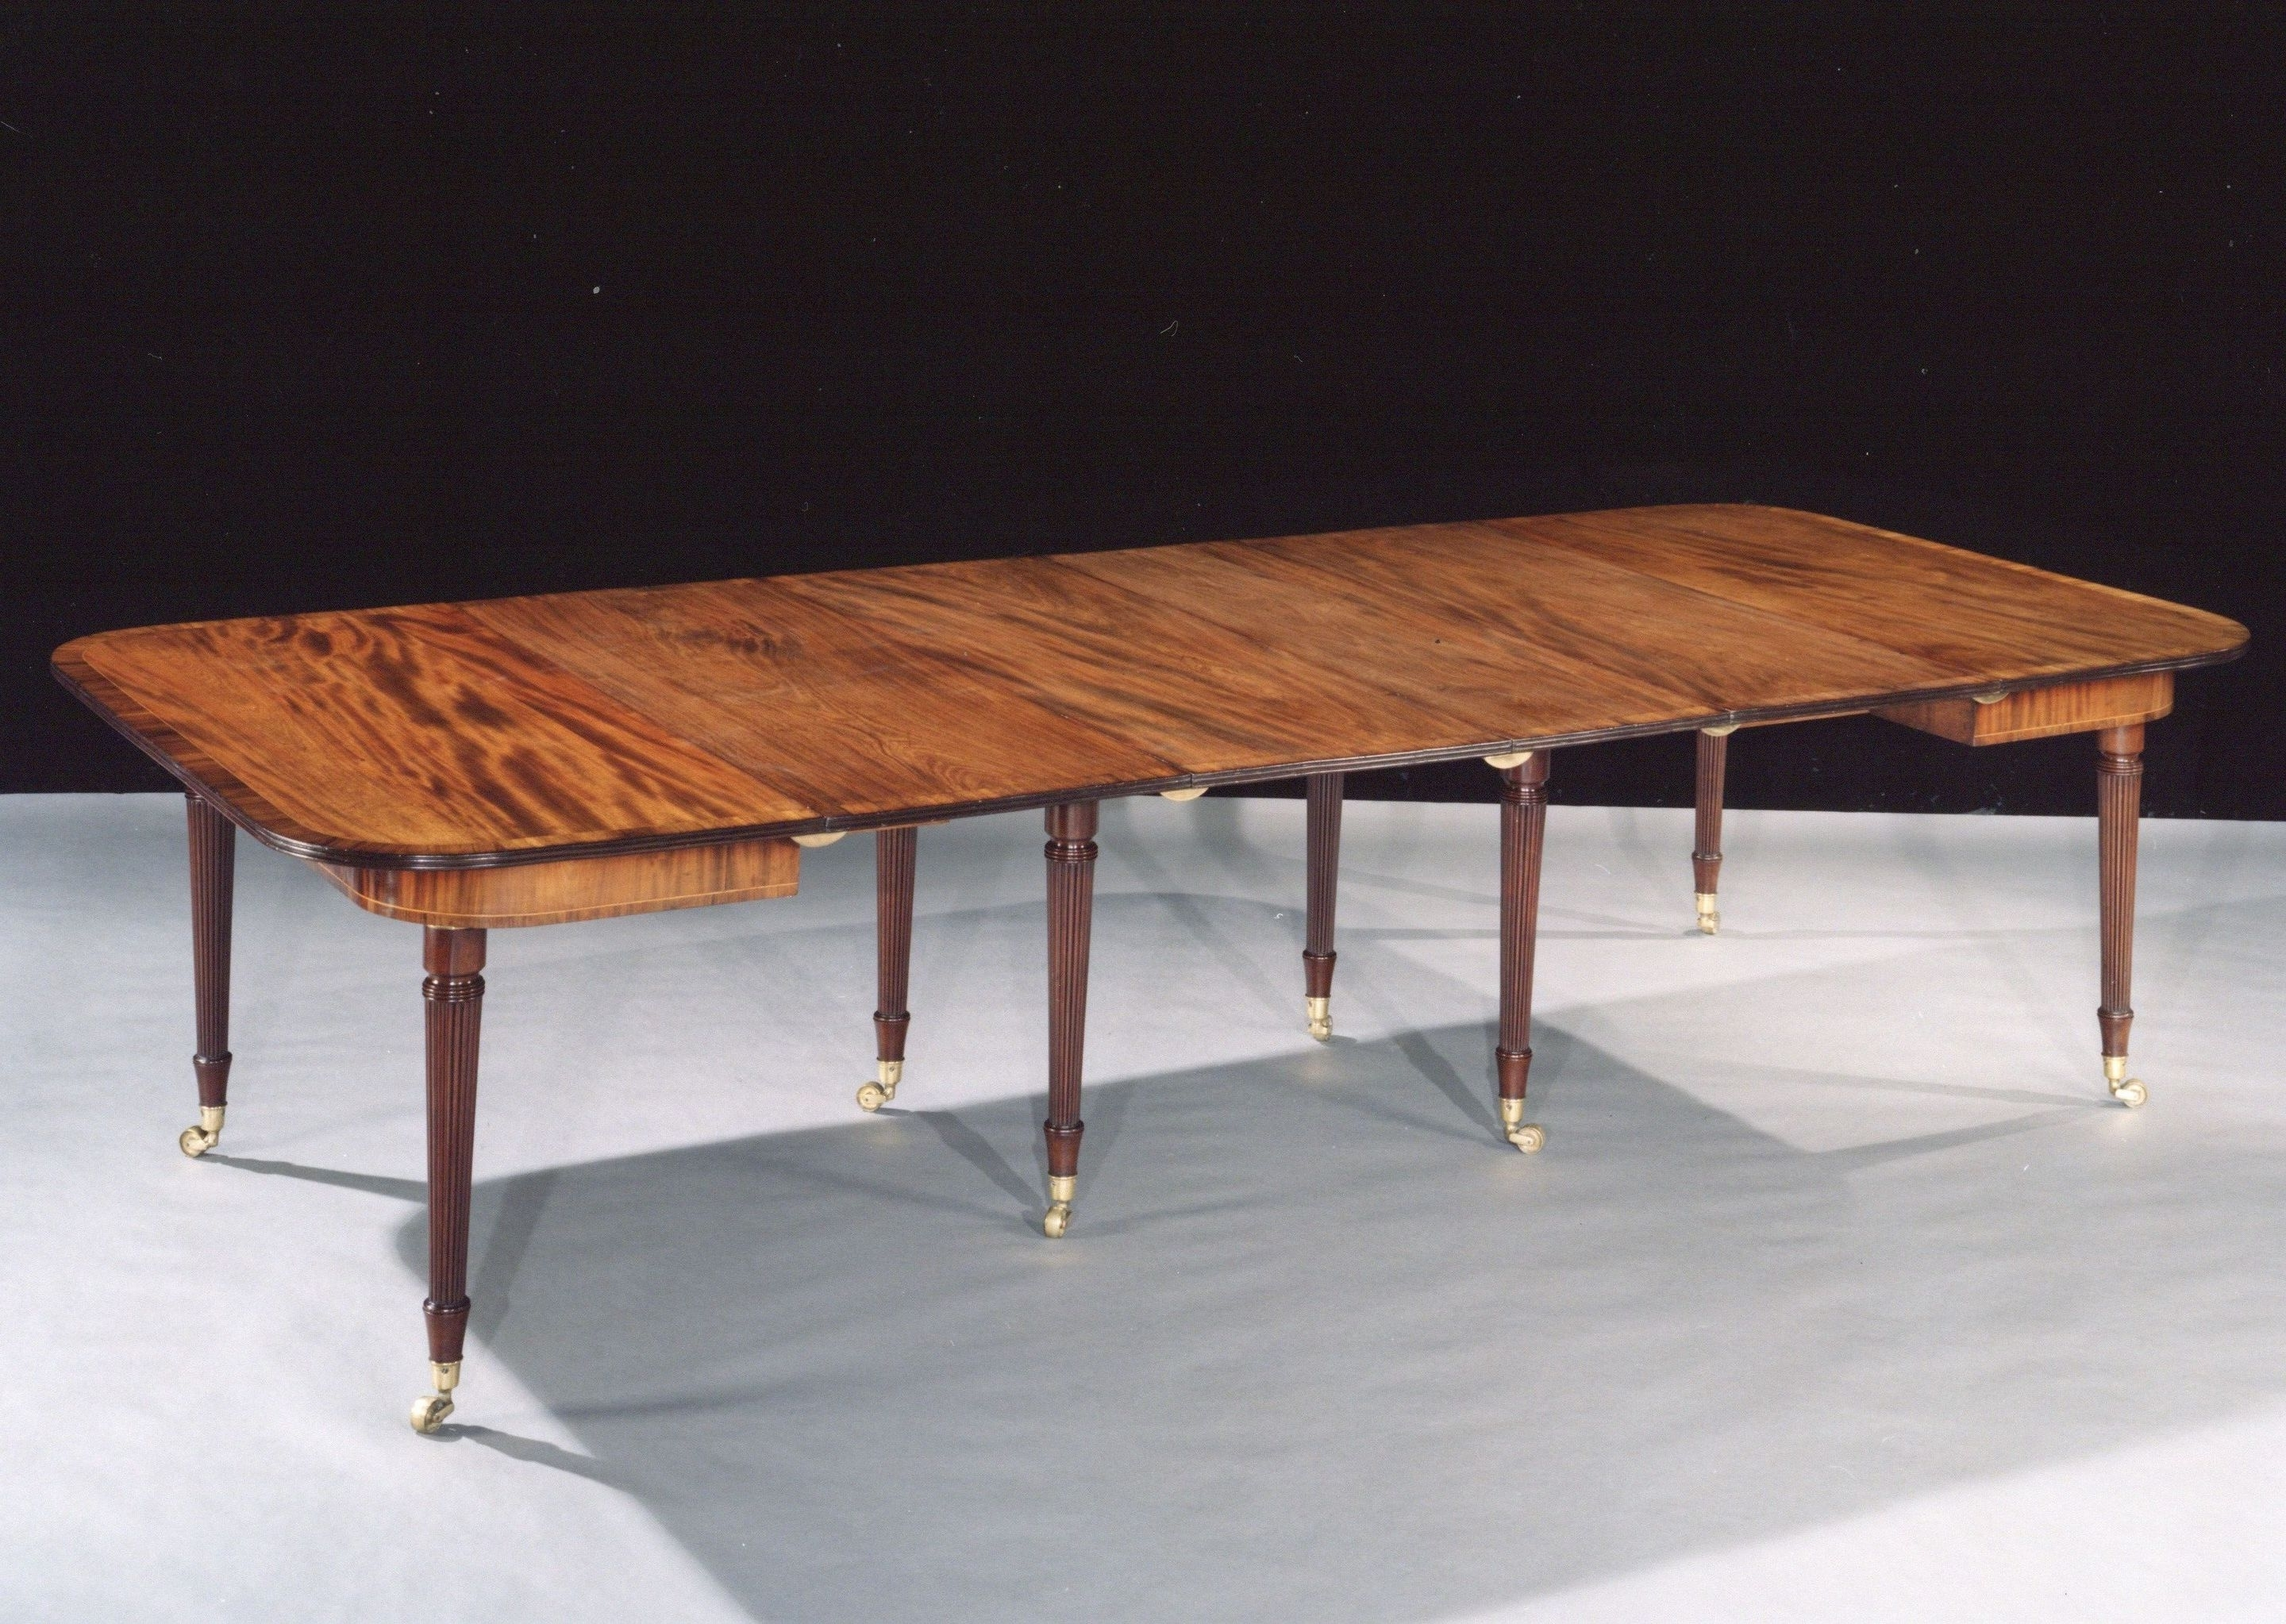 A George Iii Mahogany 'imperial Dining Table' Attributed To Gillows Within Most Recent Imperial Dining Tables (View 22 of 25)